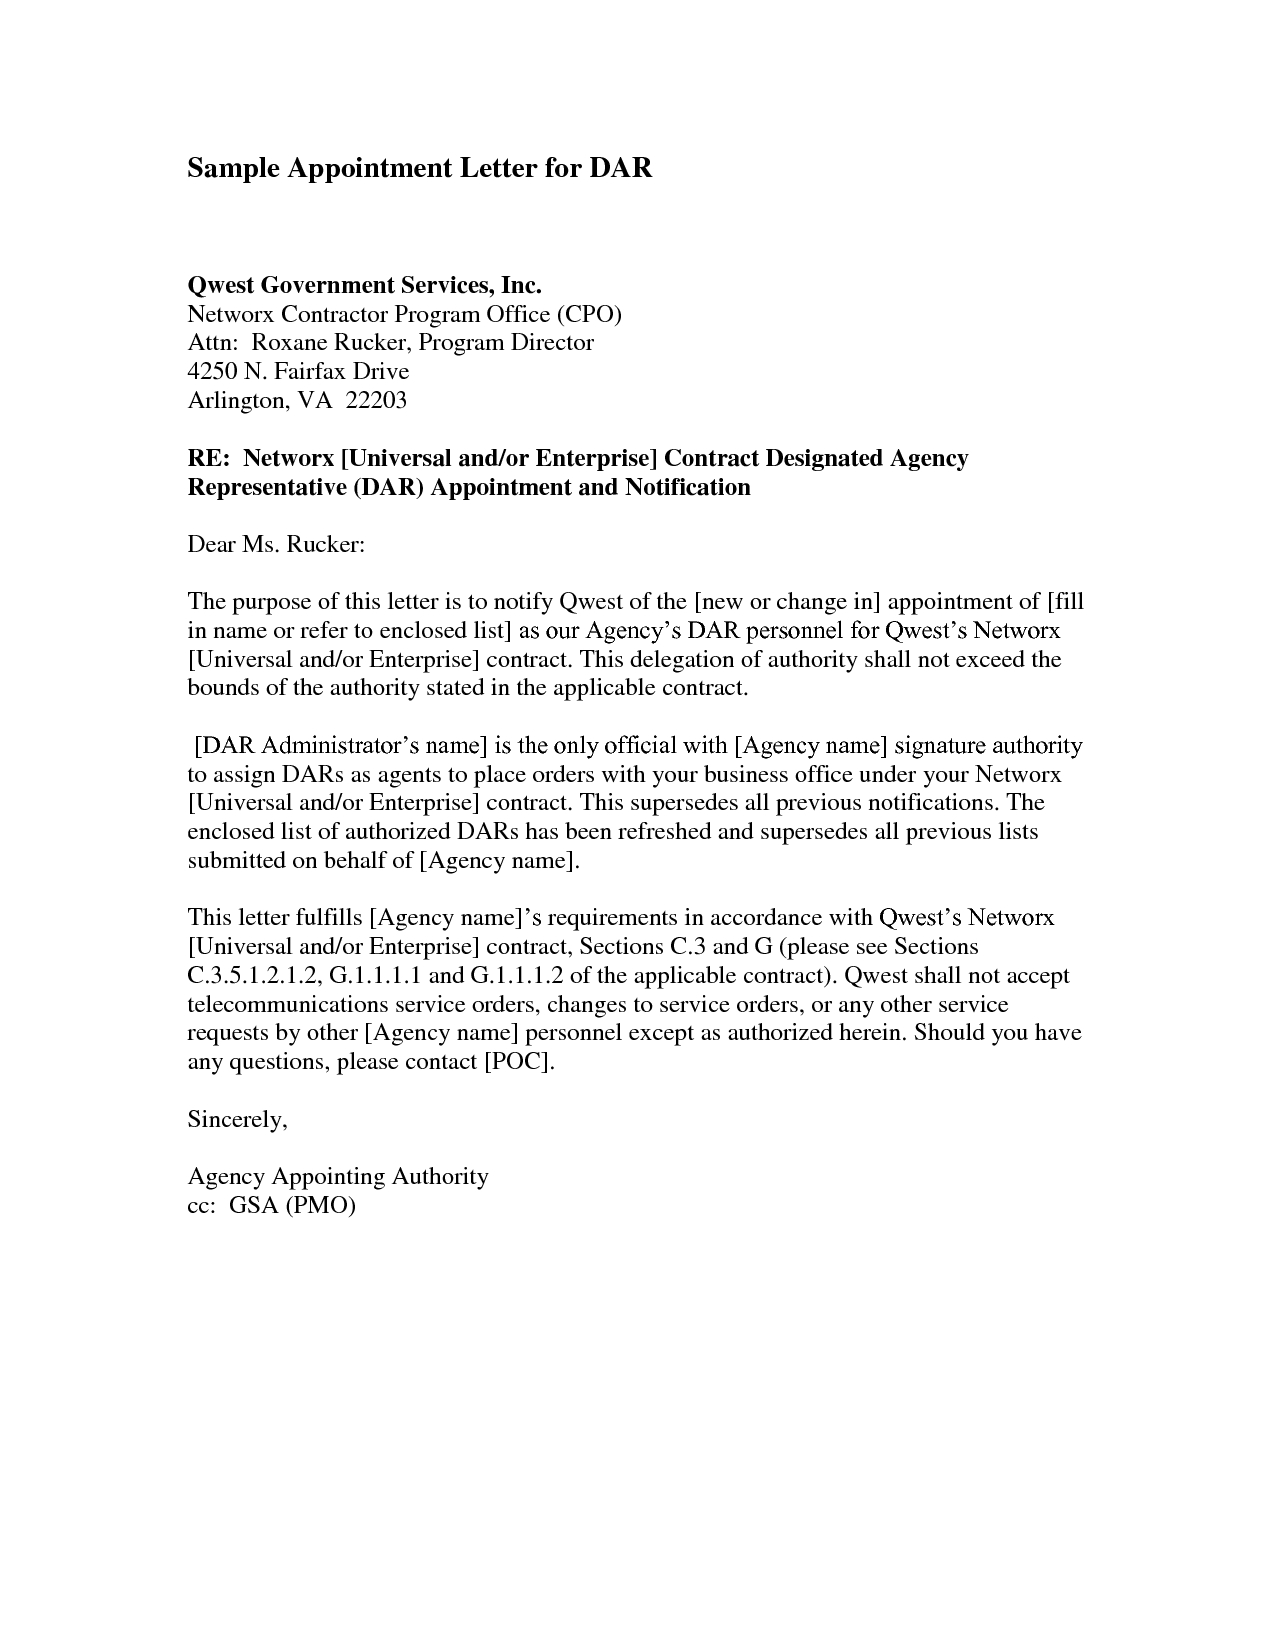 Business Proposal Acceptance Letter Template - Trustee Appointment Letter Director Trustee is Appointed or